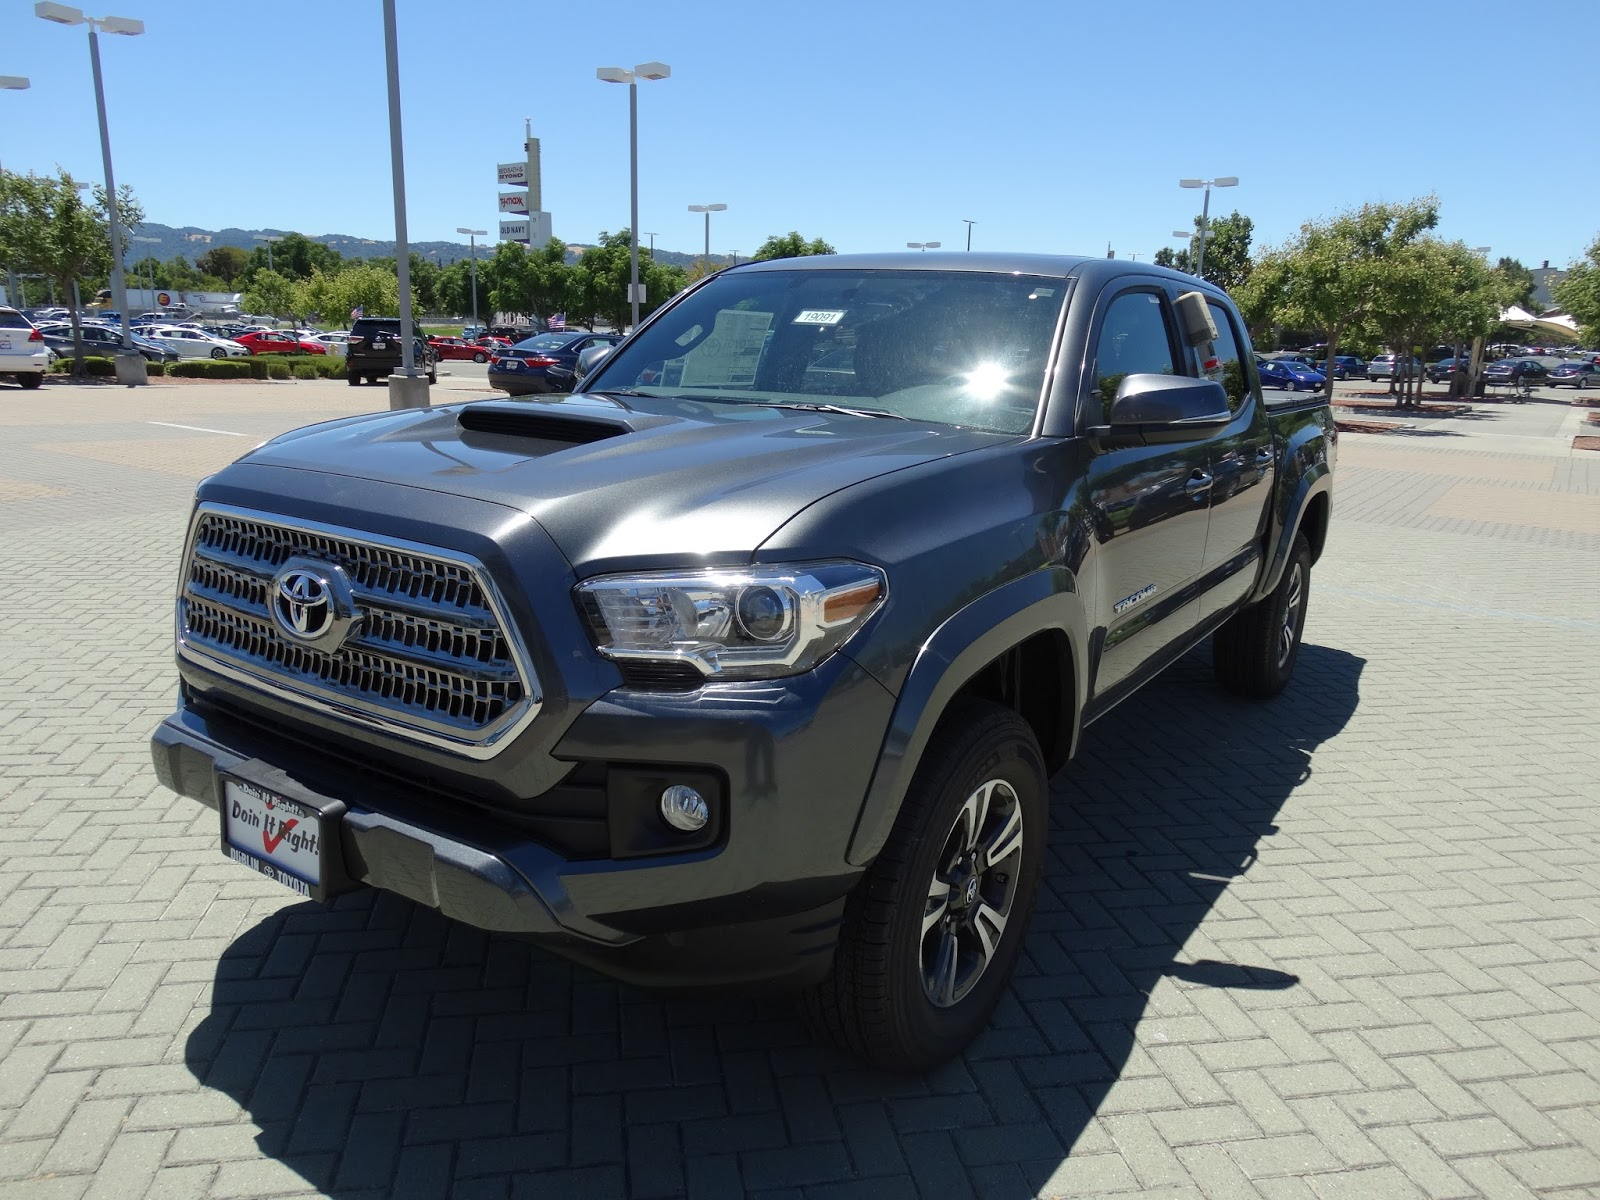 hight resolution of with 3 43 turns to lock the tacoma comes with a speed sensitive hydraulic assist rack and pinion power steering unit this tacoma here comes with an ect